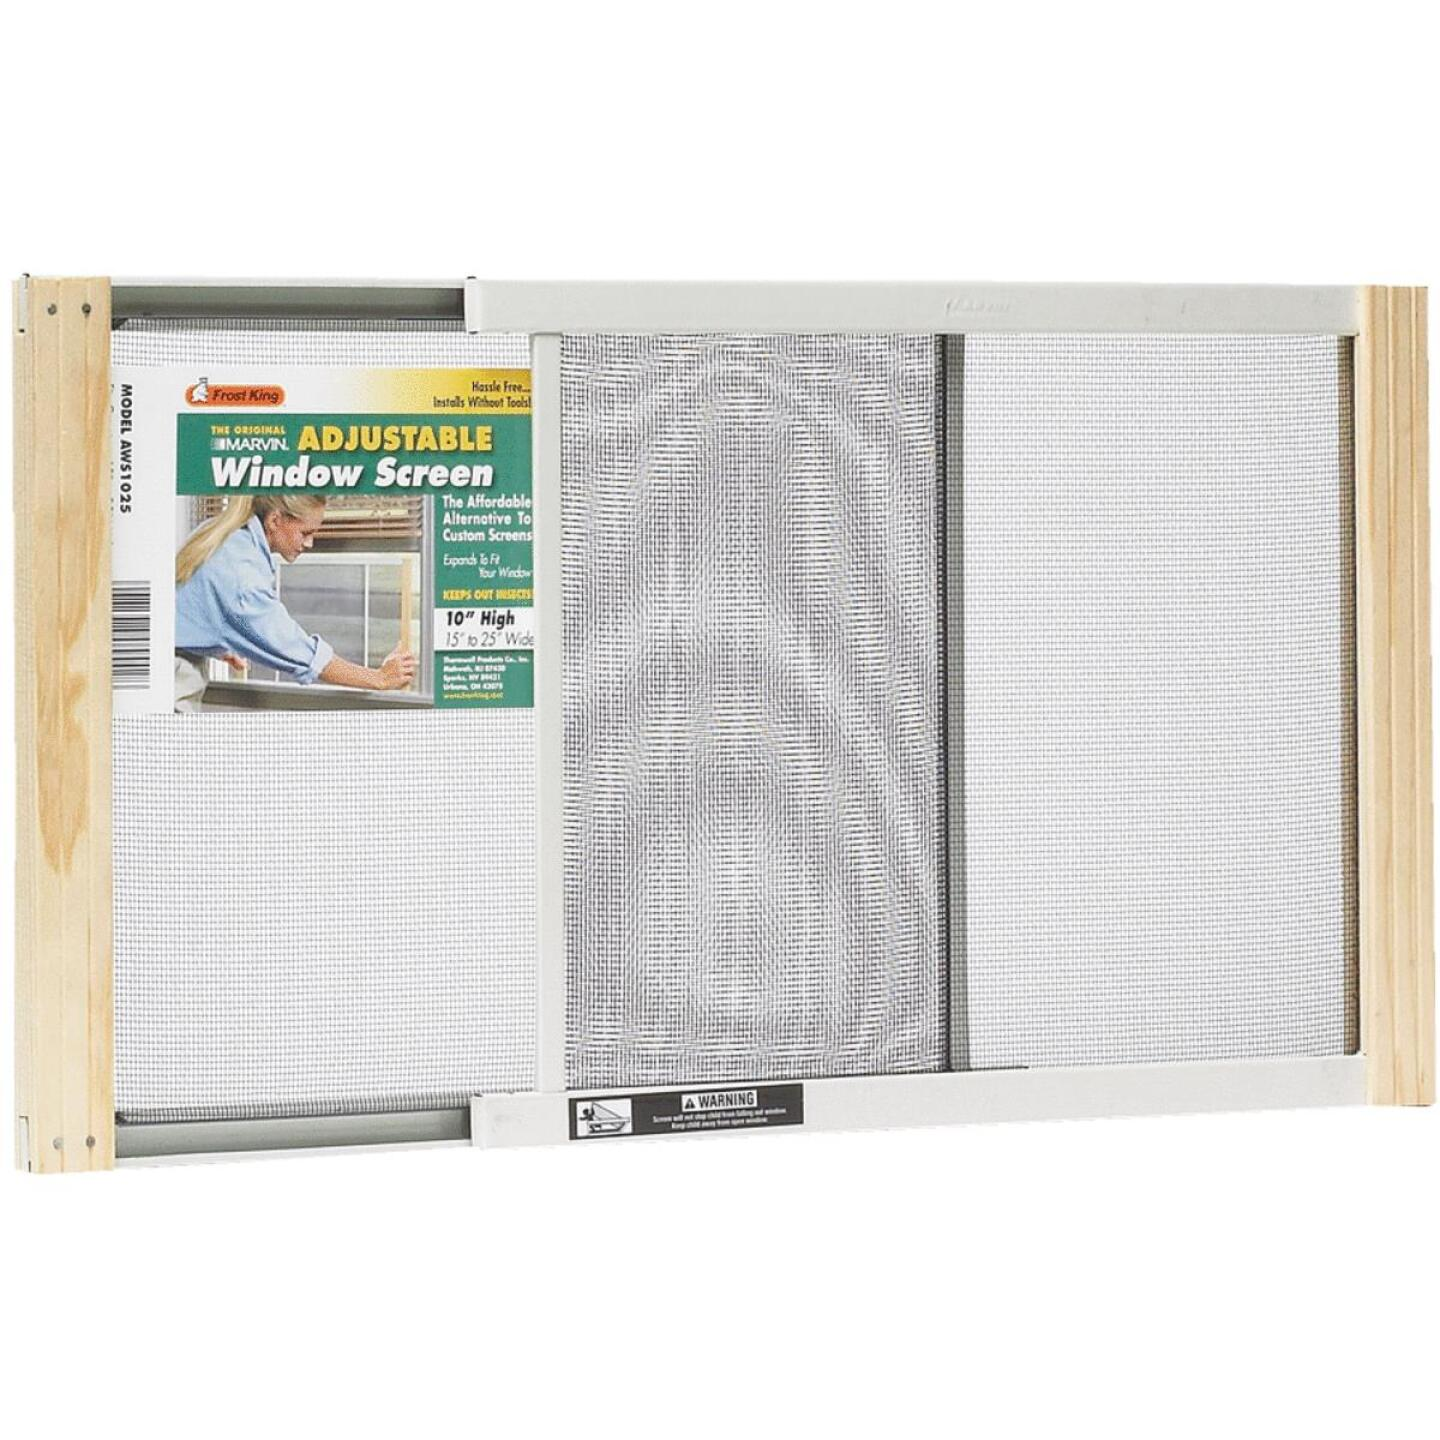 Frost King 15 to 25 In. W. x 10 In. H. Adjustable Metal Rail Screen Image 1